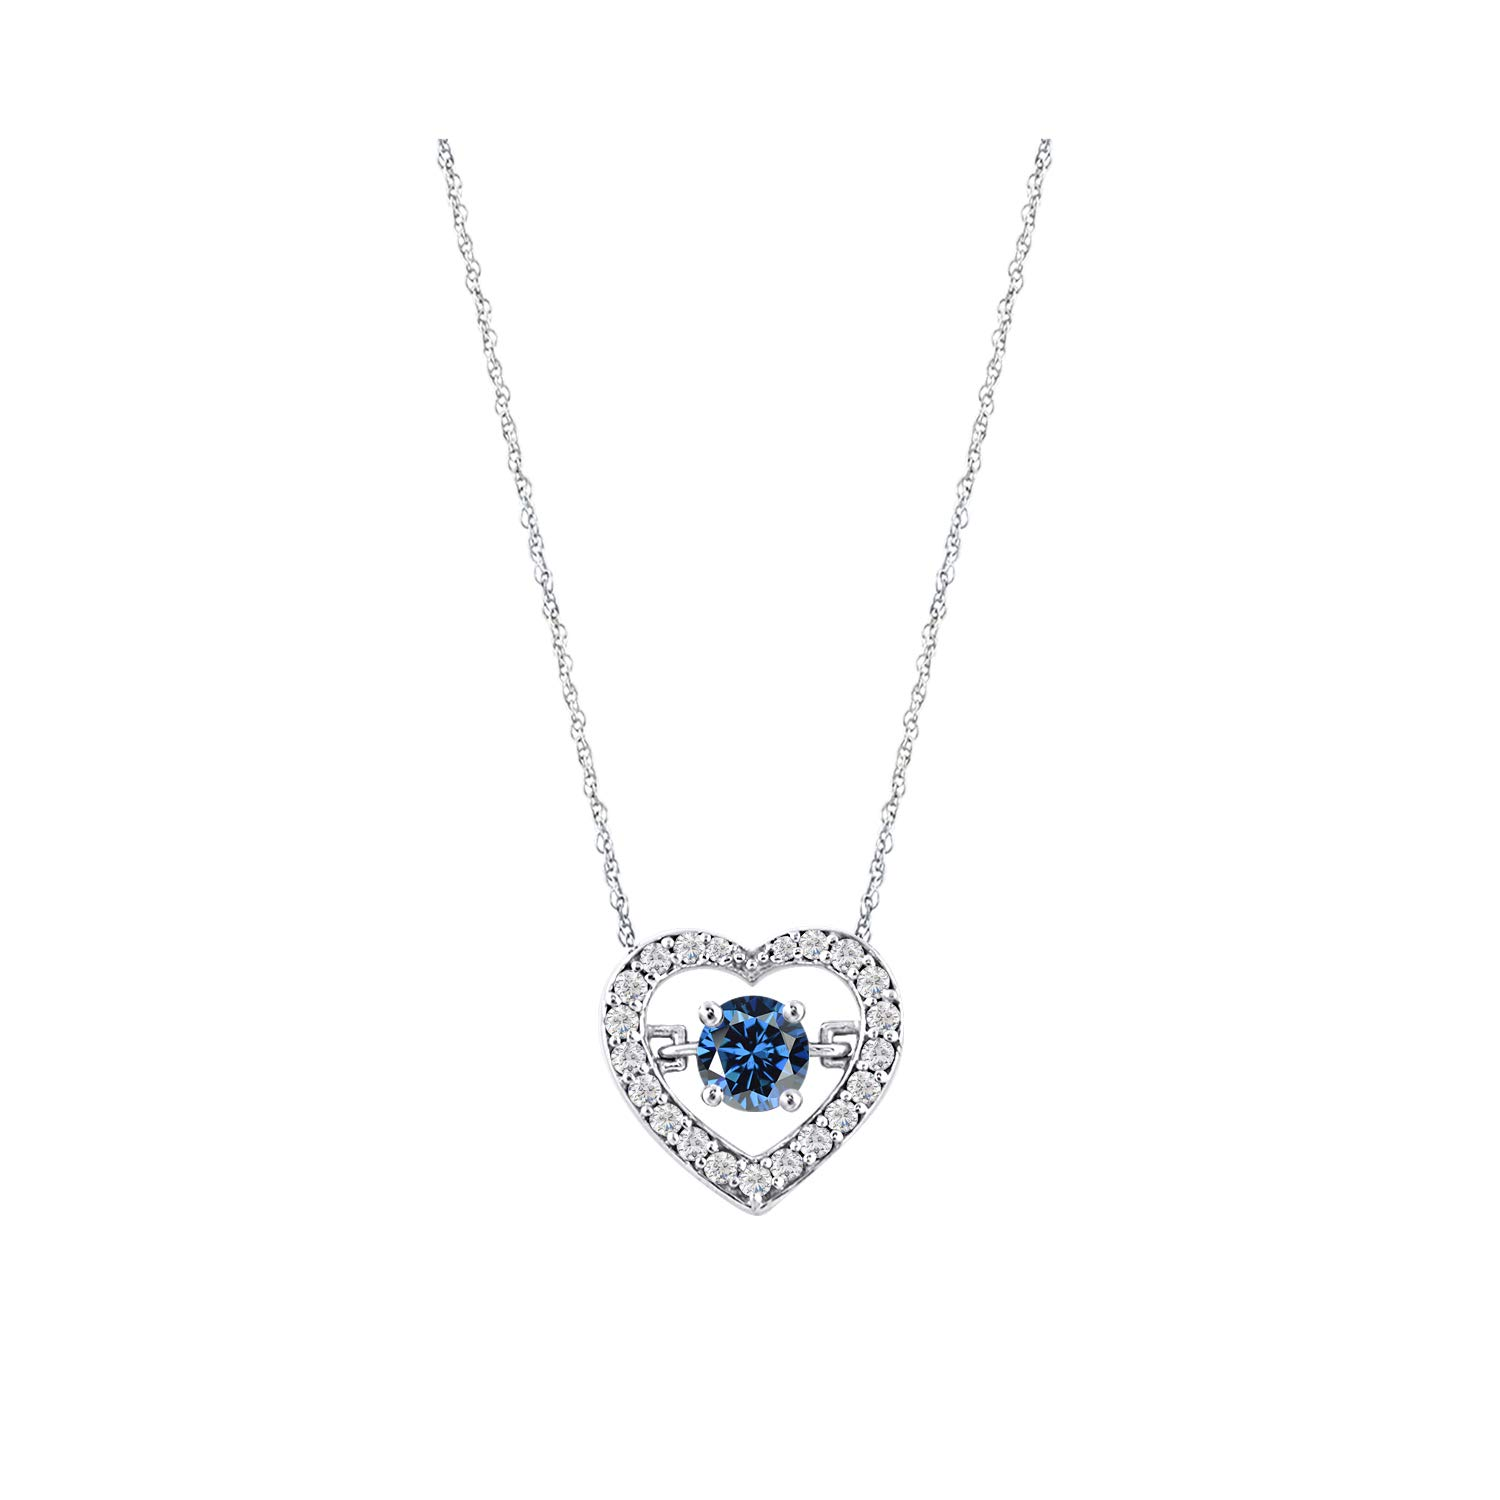 Craft On Jewelry 14k Yellow Gold Plated Dancing Simulated Blue Sapphire Solitaire Heart Pendant Necklace for Her